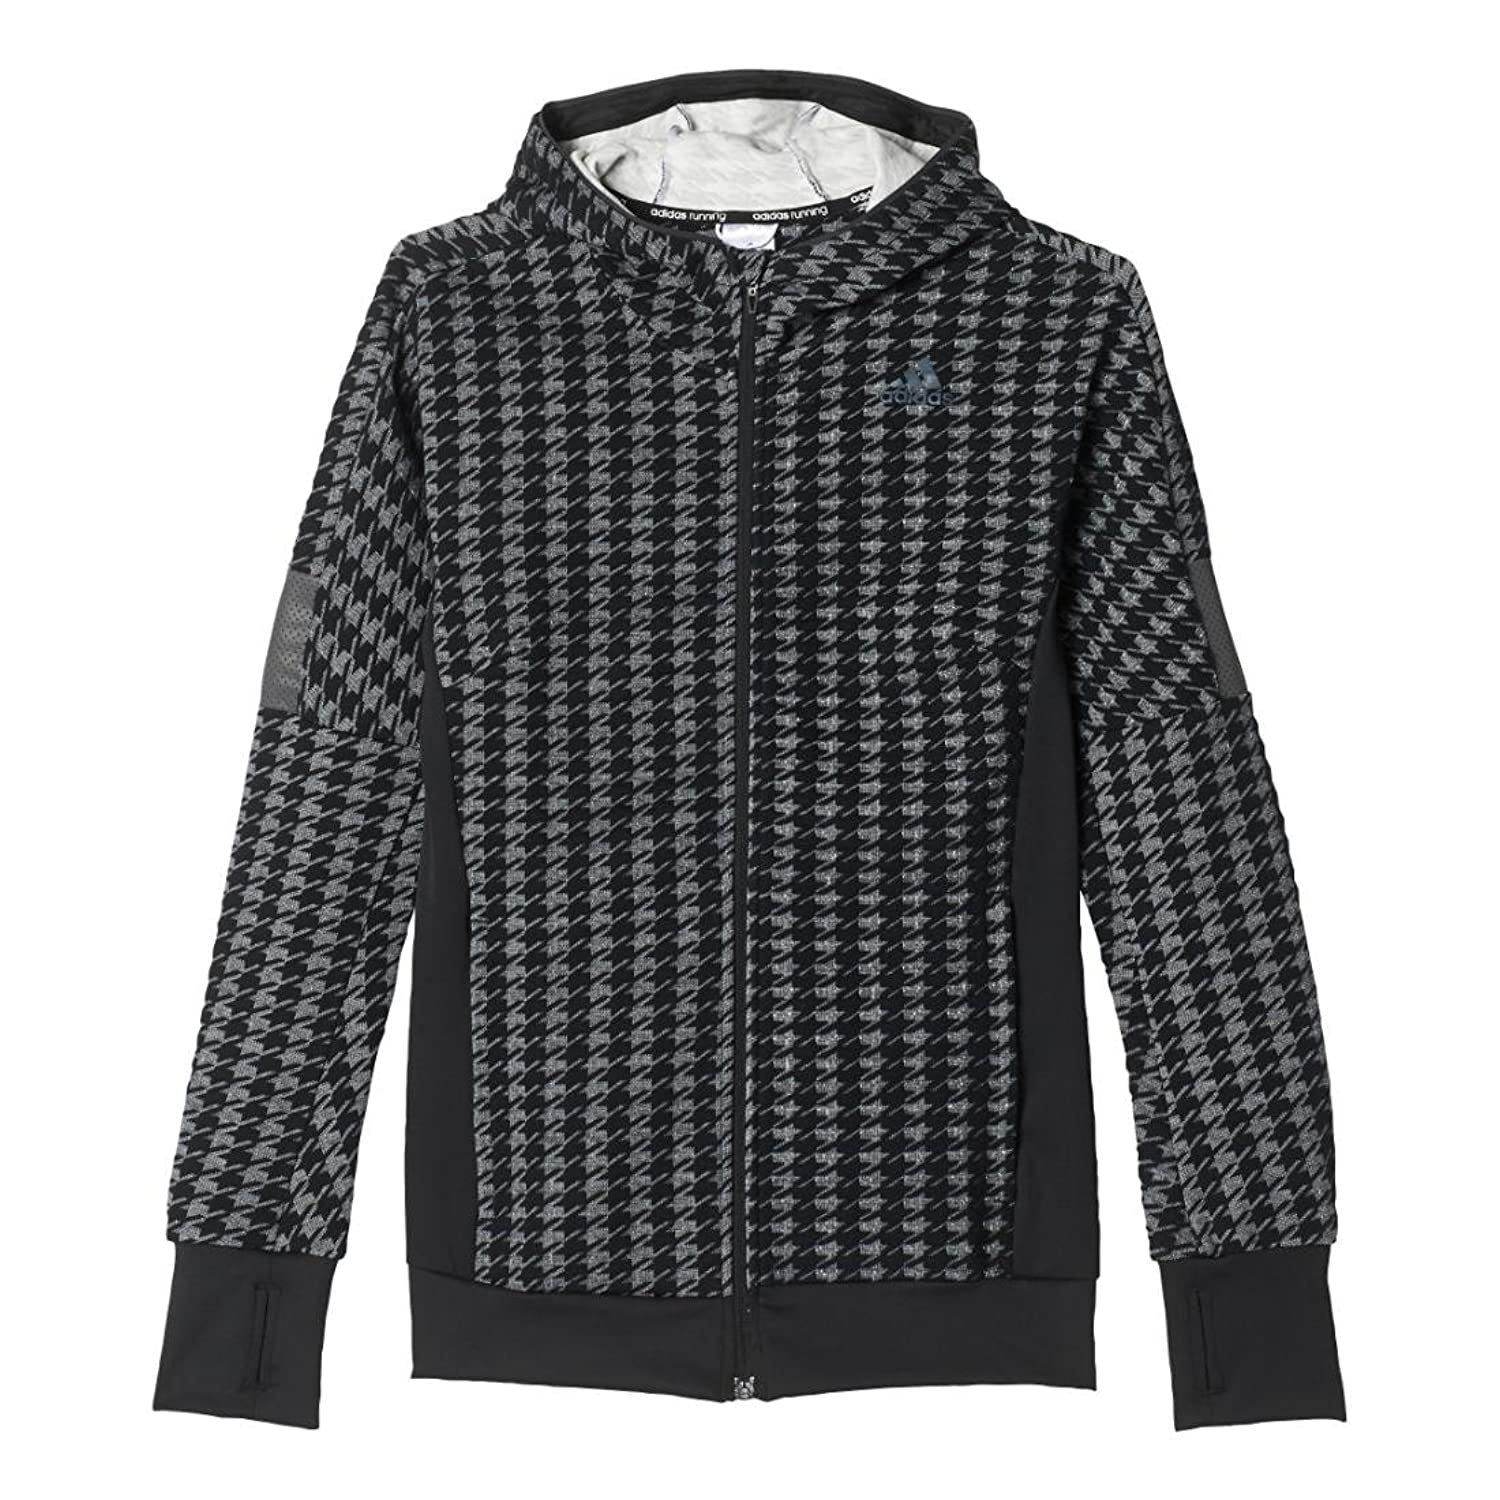 Wholesale adidas Ultra Energy Womens Houndstooth Jacket #AP8172 for cheap